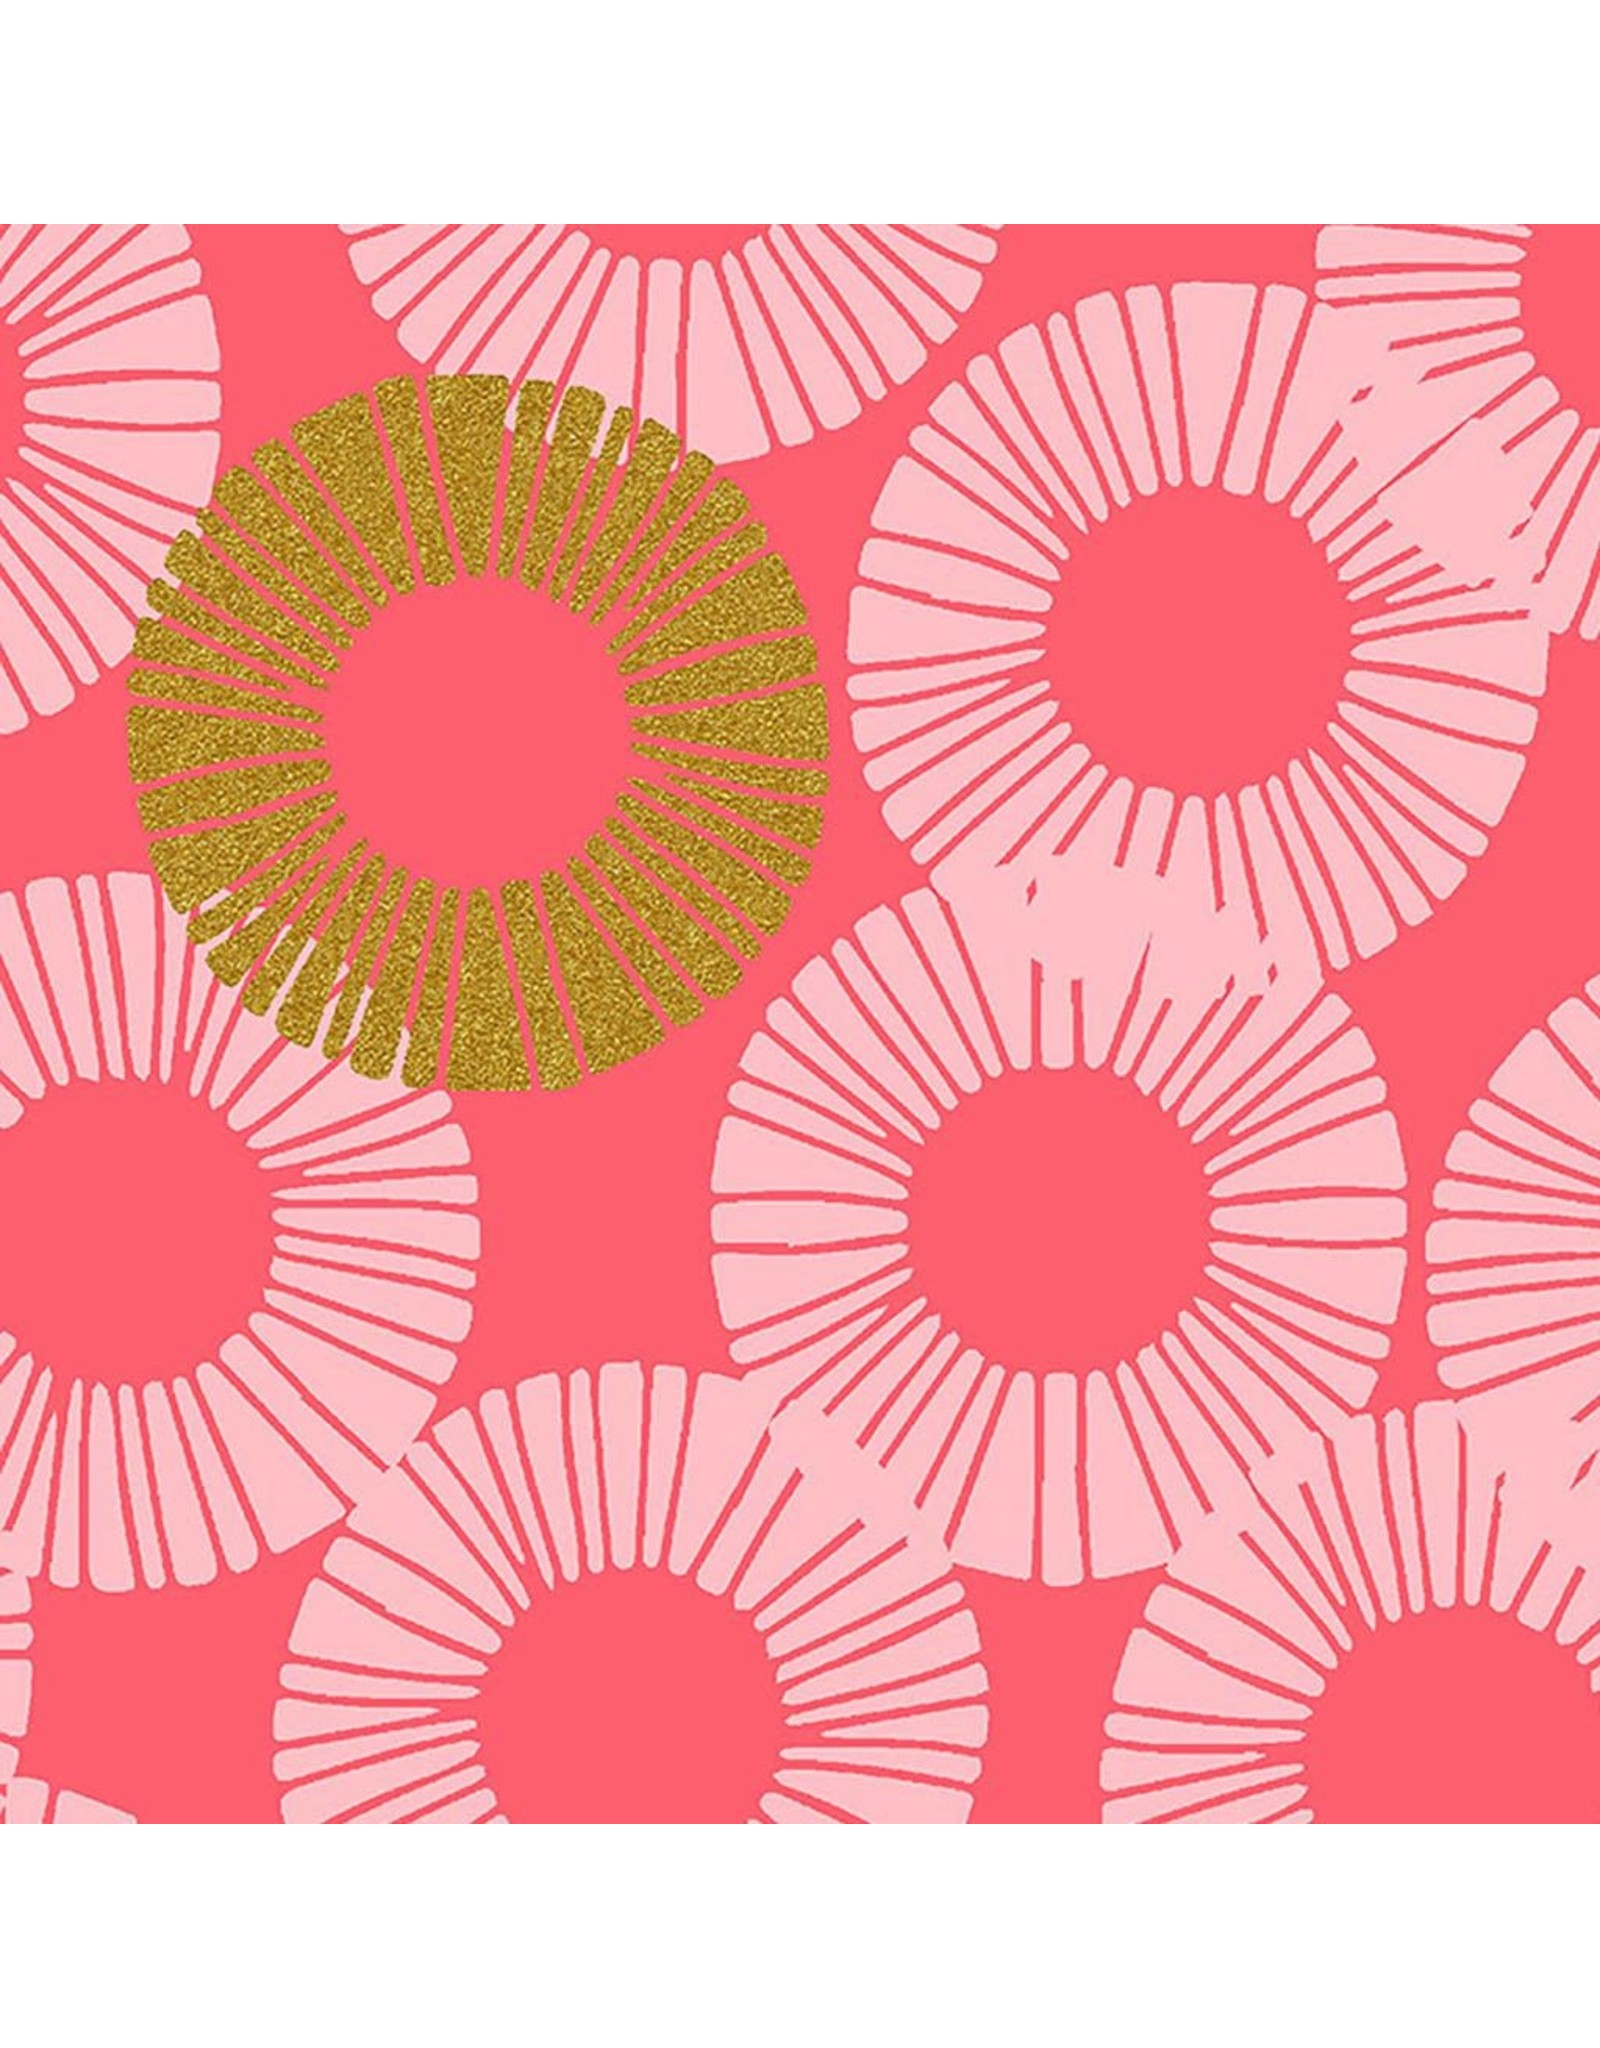 RJR Fabrics Shiny Objects, Glitz and Glamour Eclipse in Pink Paradise with Gold Metallic, Fabric Half-Yards RJ2802-PP2M